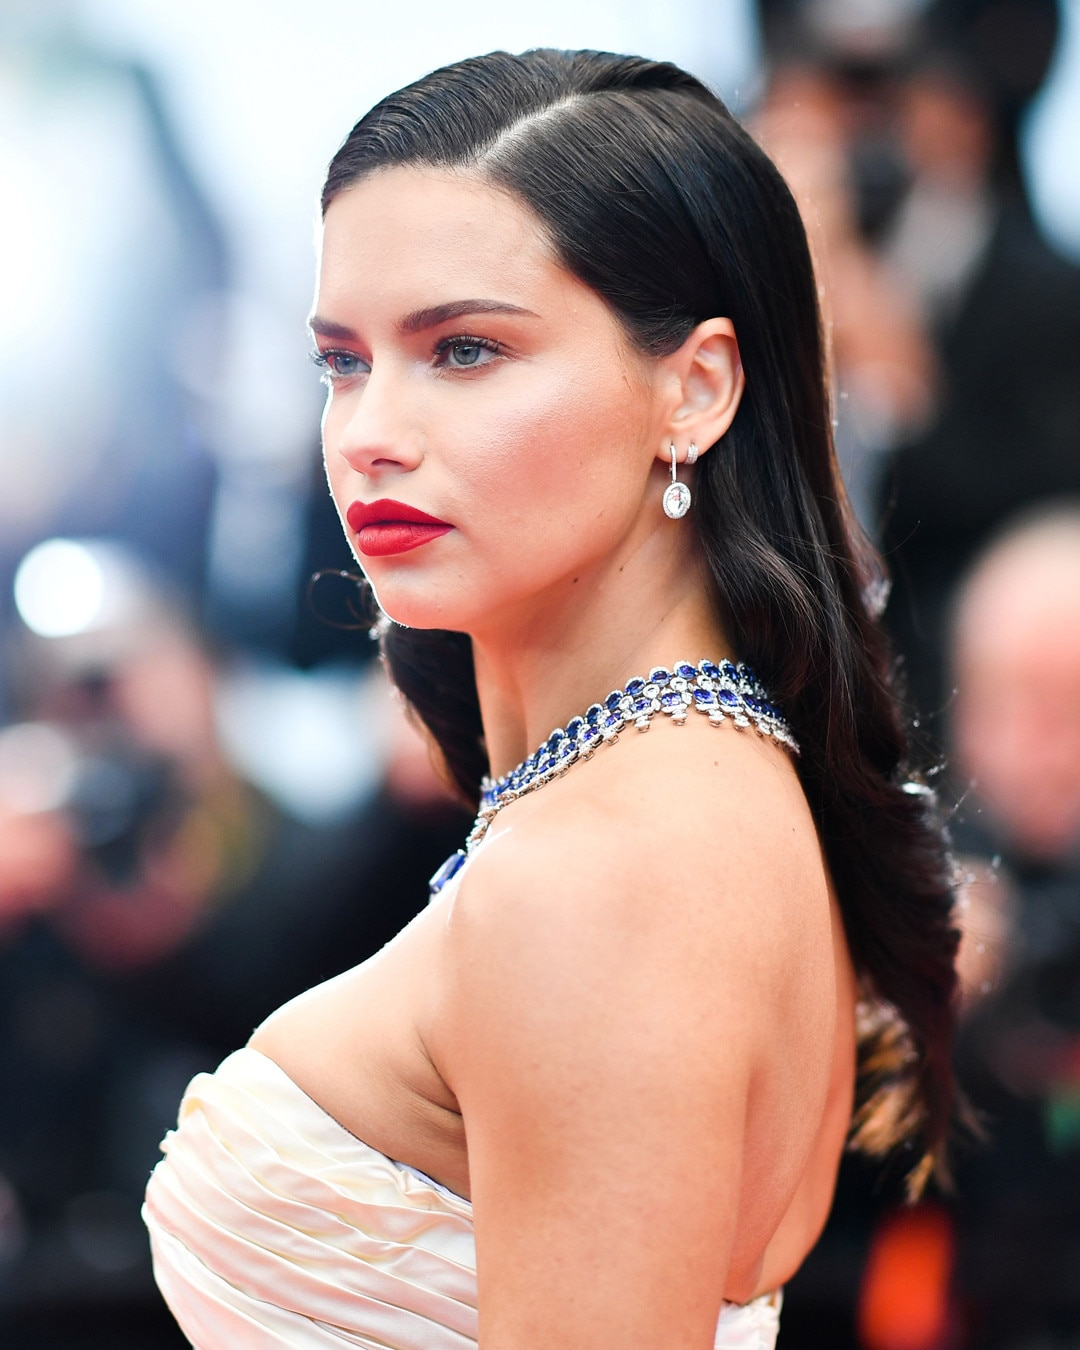 Adriana Lima Naked Photos